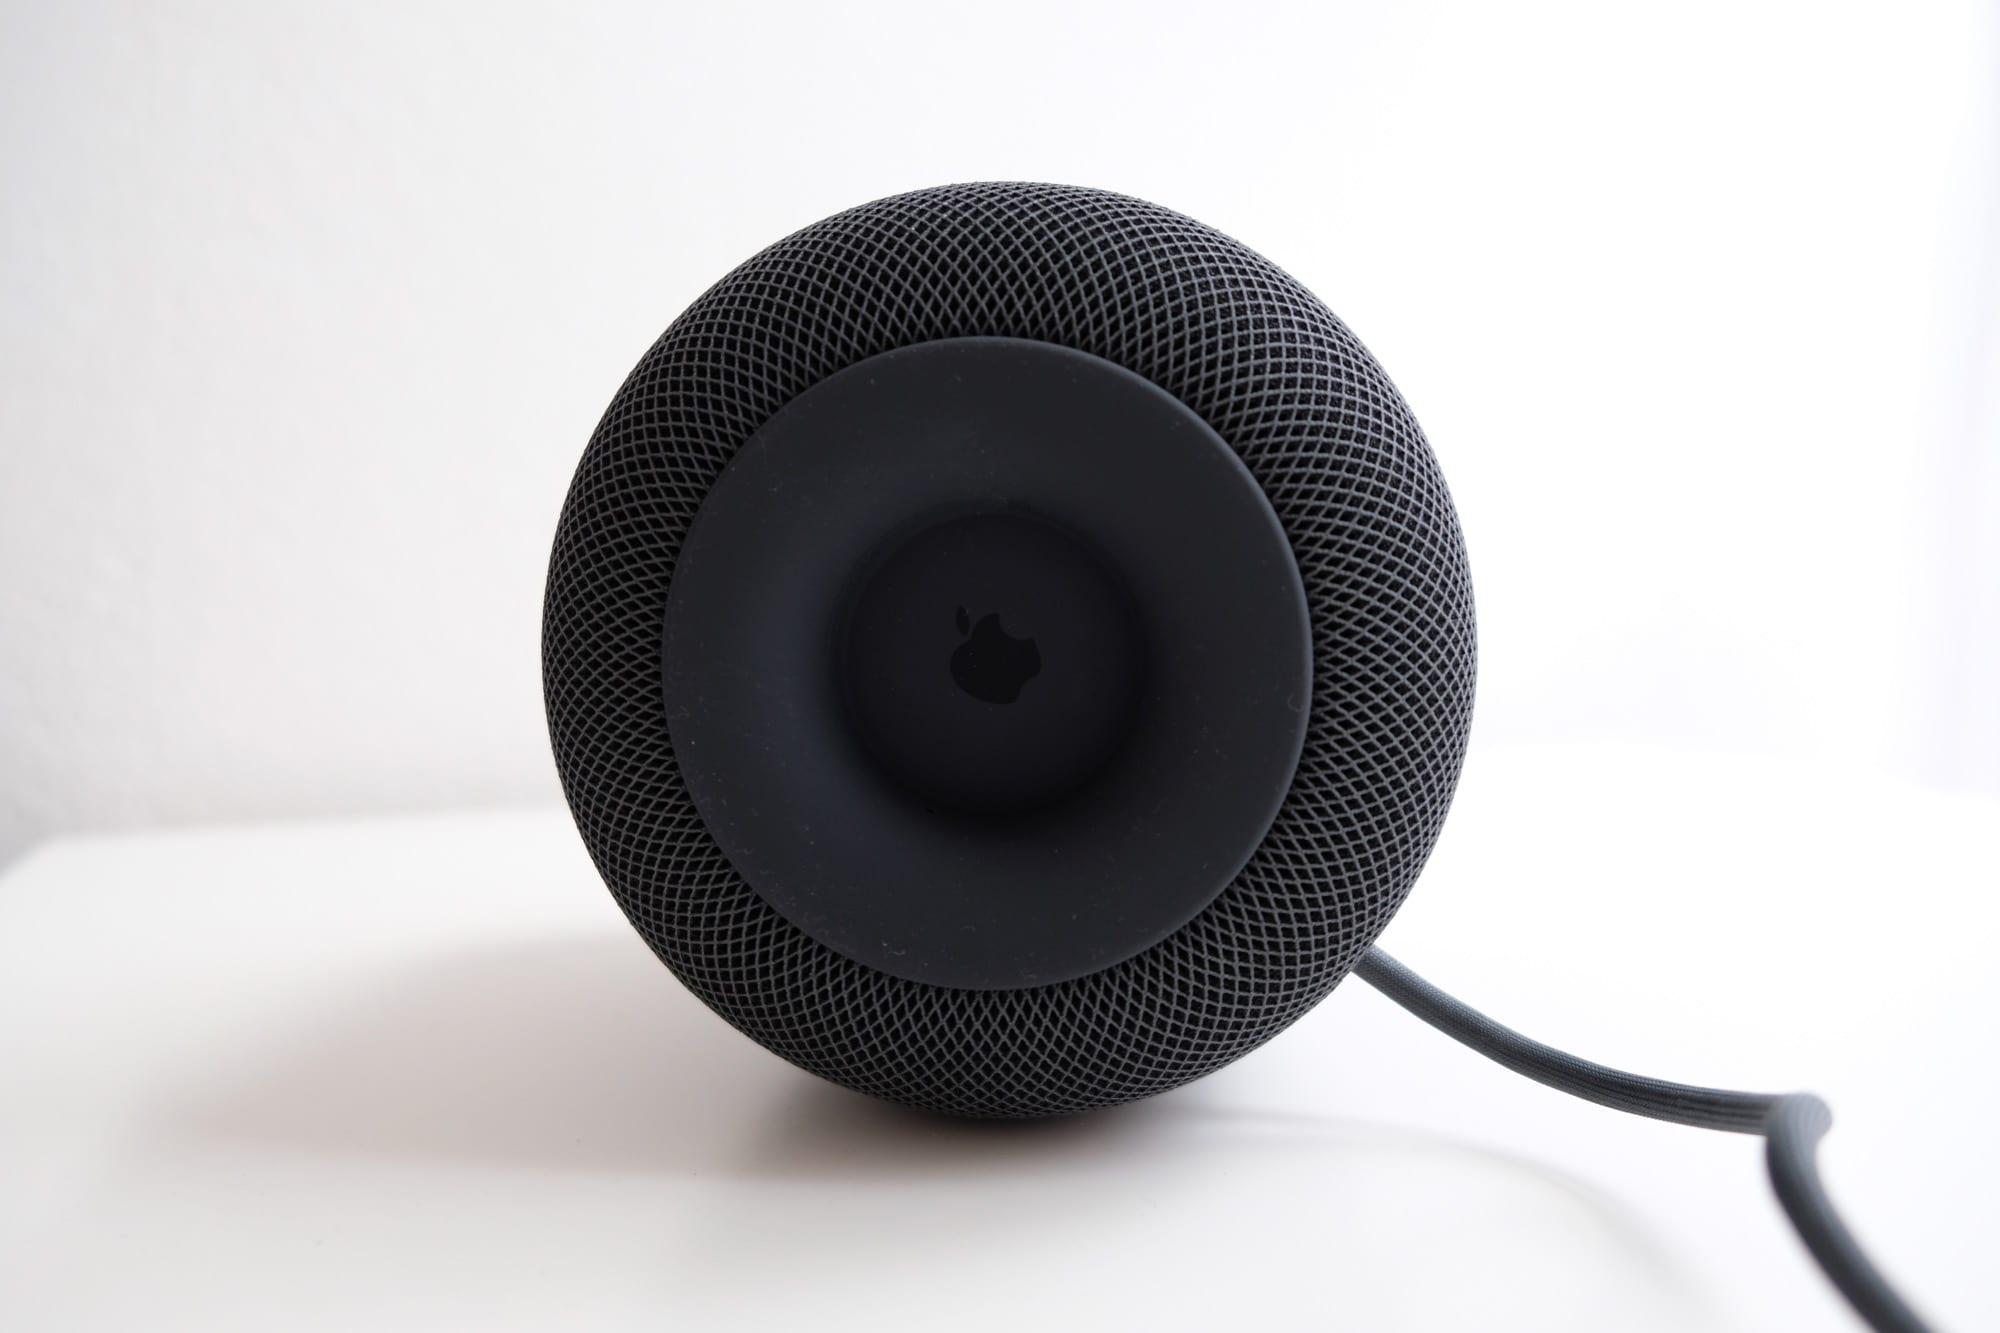 apple homepod recenzia4 - Recenzia: Apple HomePod